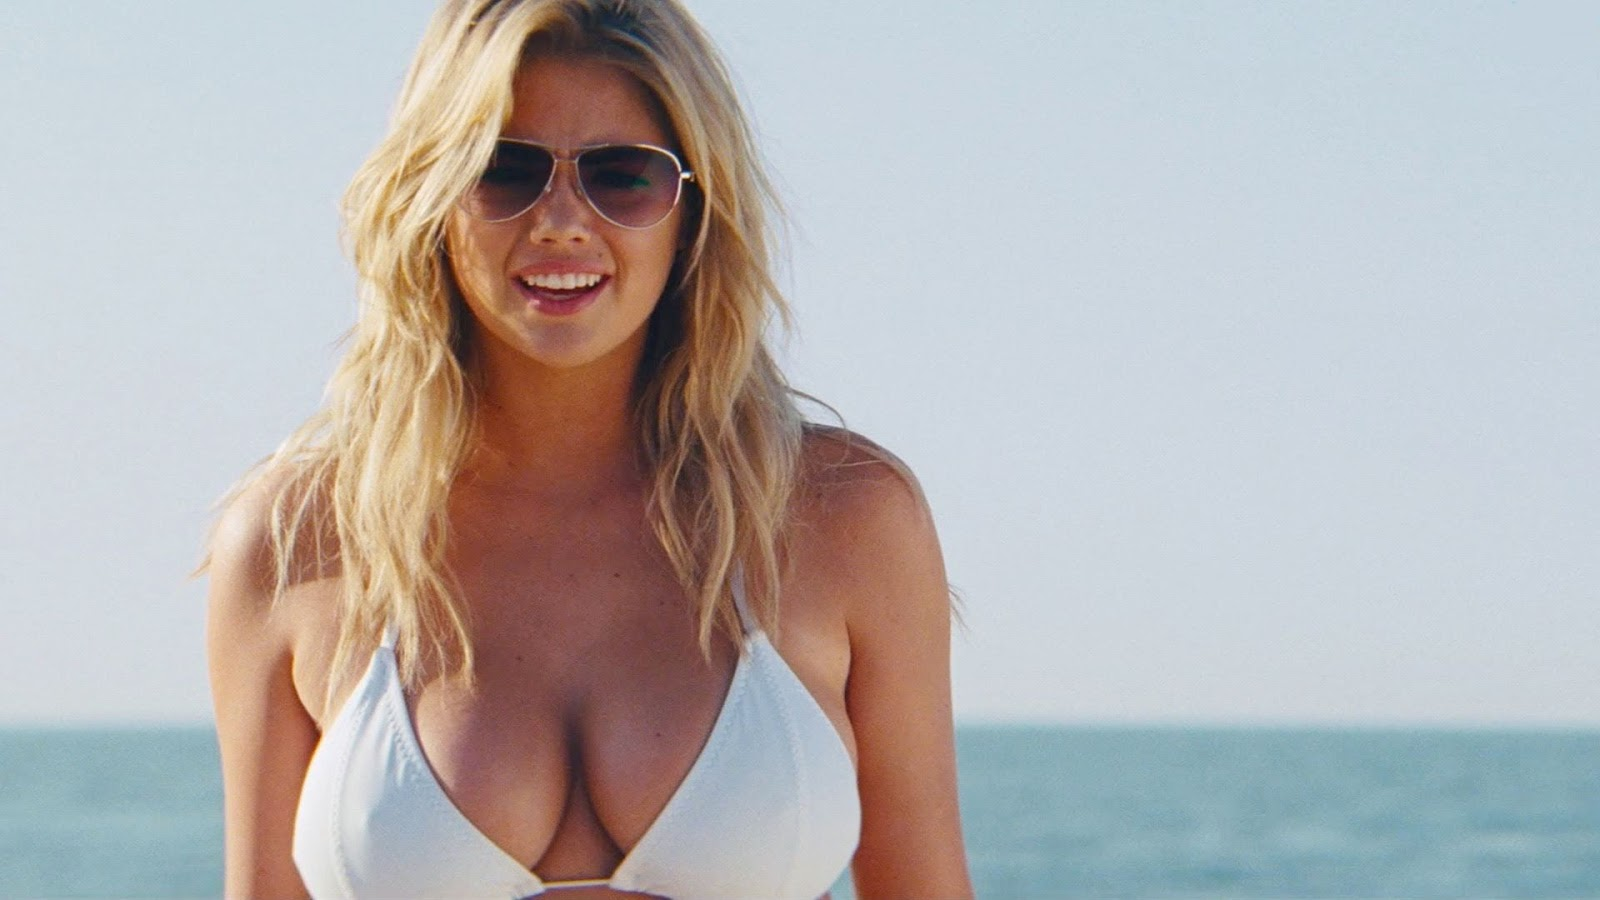 Hollywood sexy actress kate upton in bikini from other for Best online photo gallery